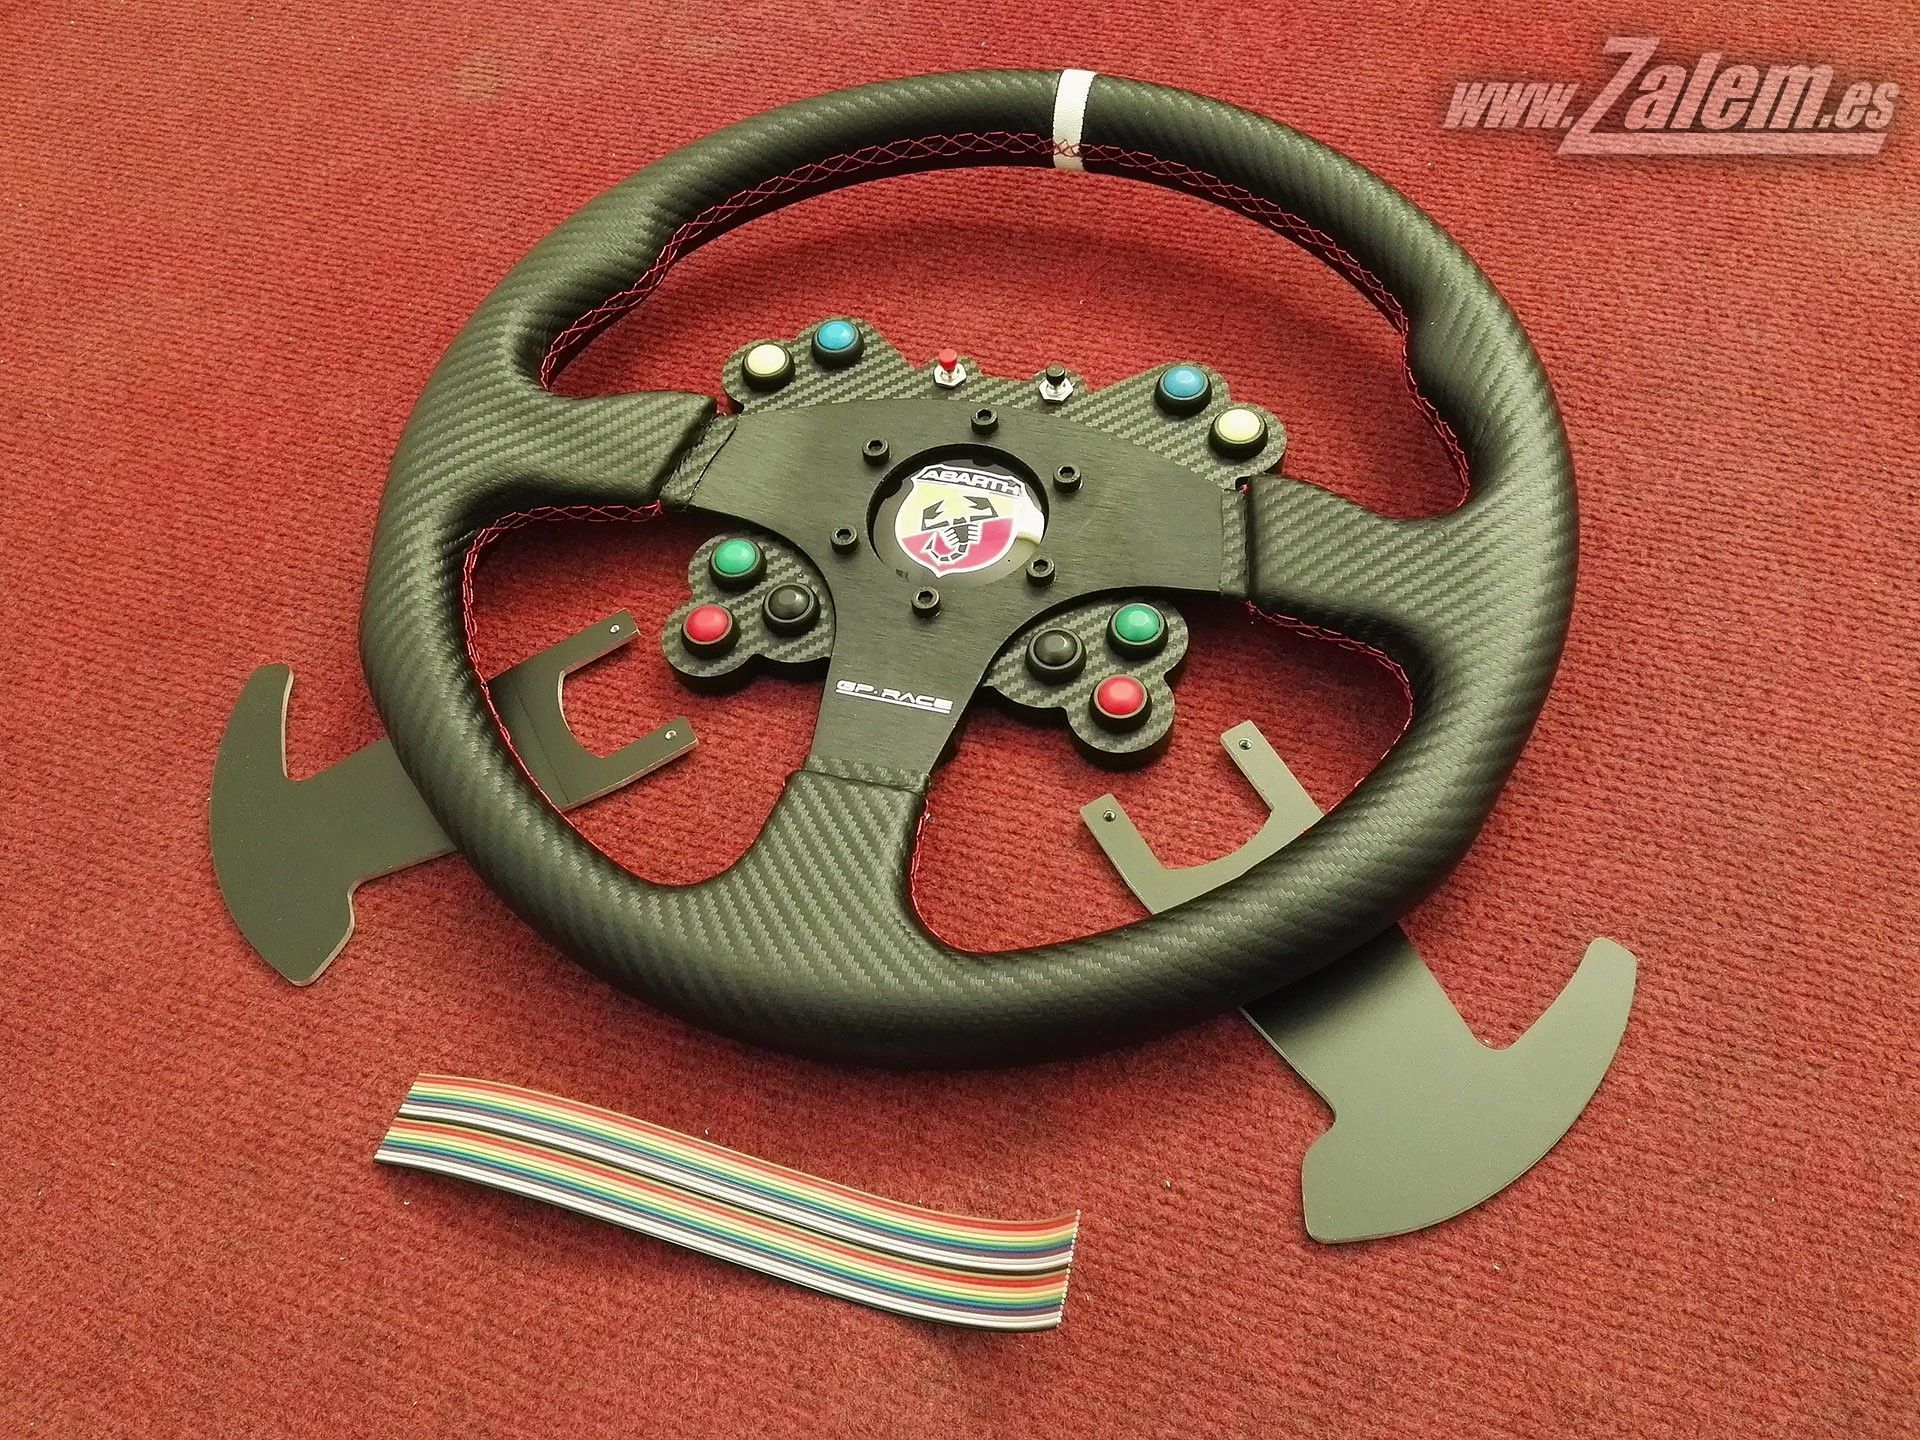 Real Steering wheel Panel with Logitech